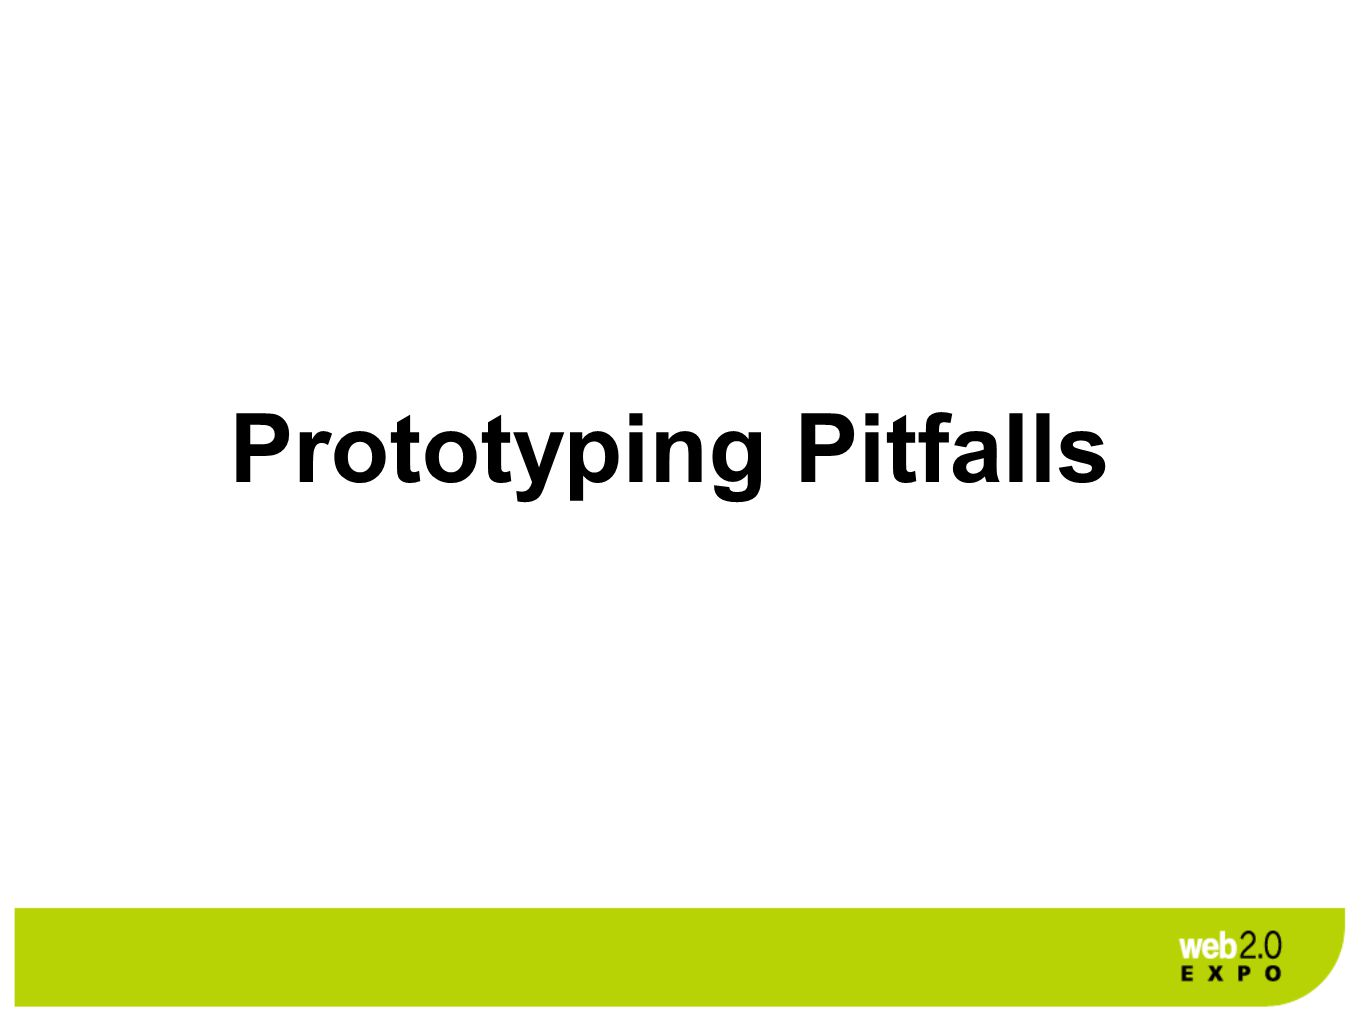 Prototyping Pitfalls